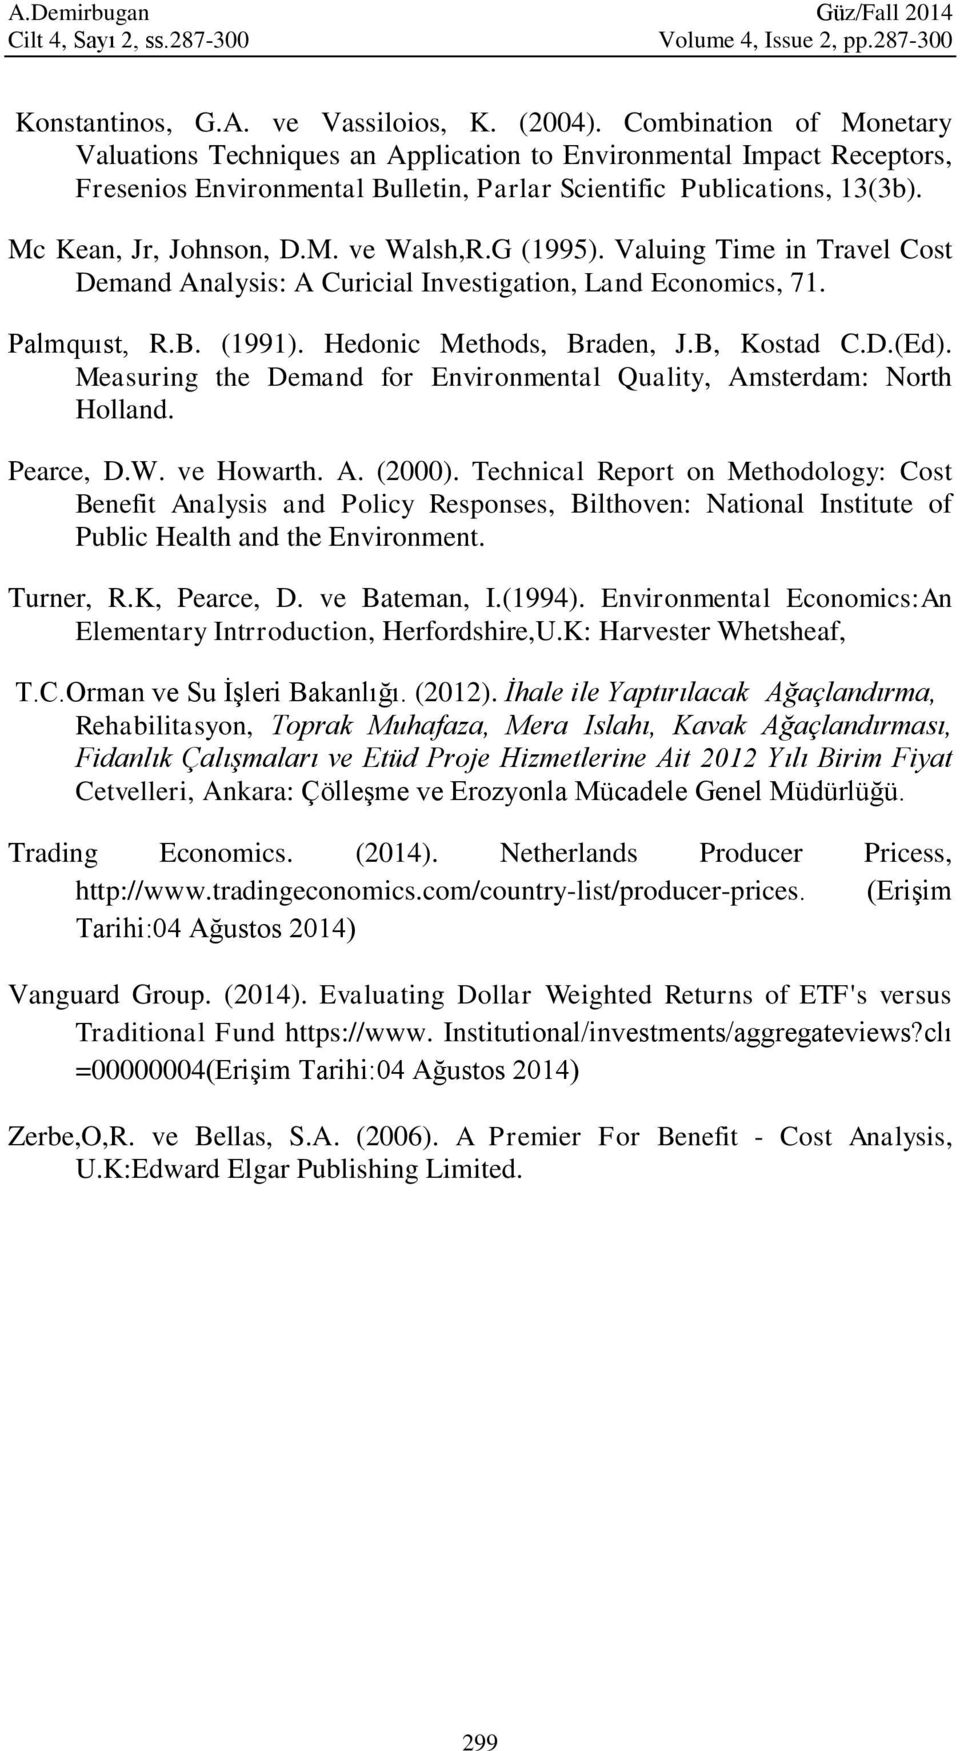 G (1995). Valuing Time in Travel Cost Demand Analysis: A Curicial Investigation, Land Economics, 71. Palmquıst, R.B. (1991). Hedonic Methods, Braden, J.B, Kostad C.D.(Ed).